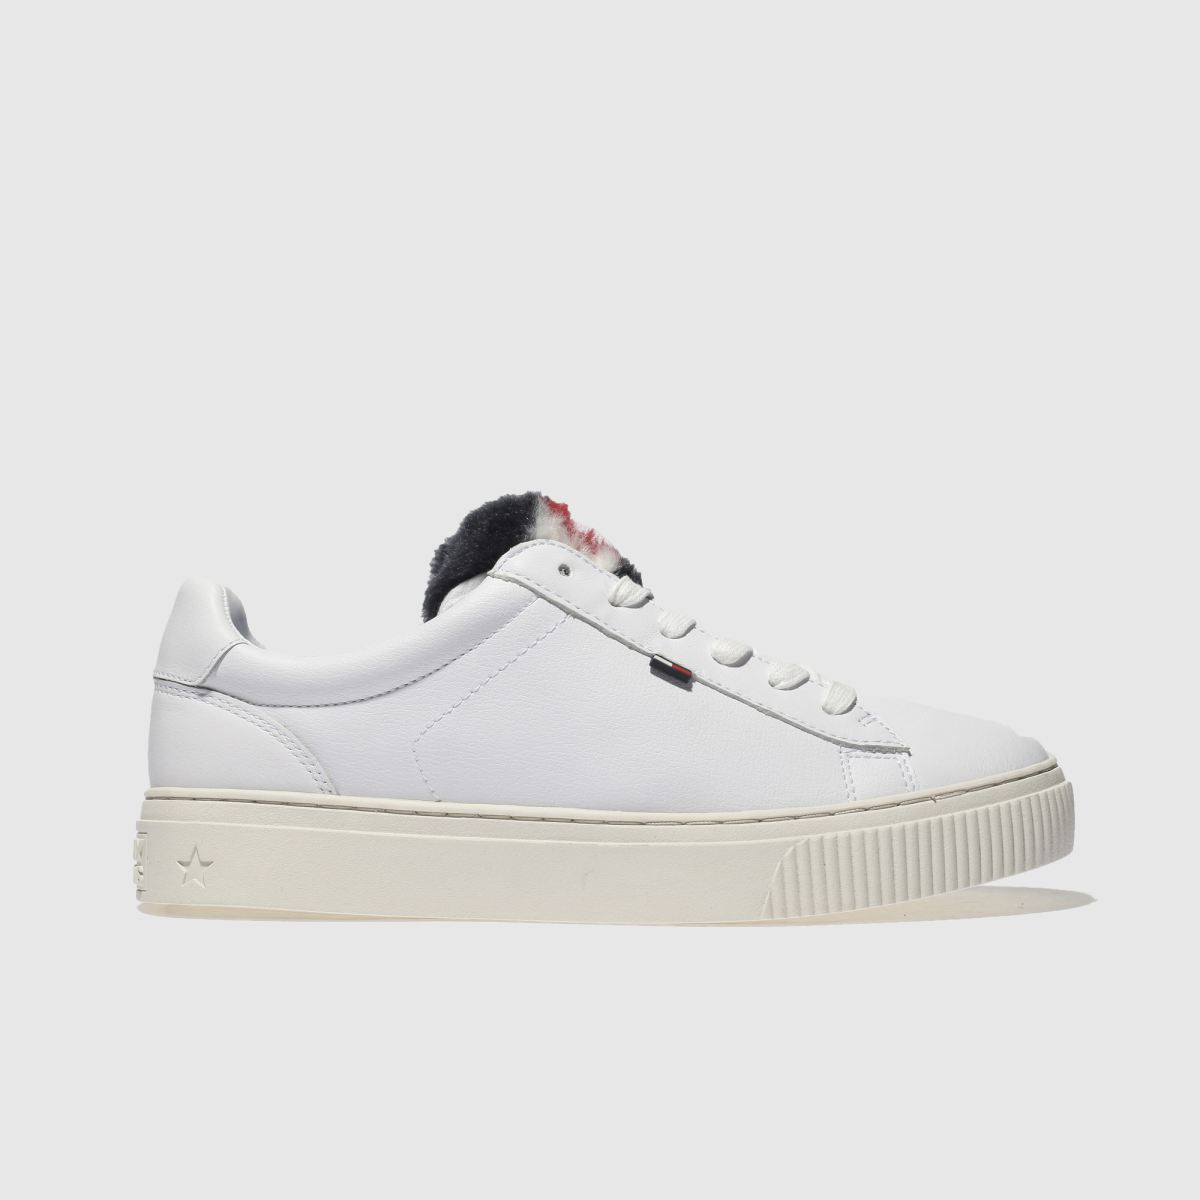 325ea6293 Tommy Hilfiger White Tj Funny Fur Star Sneaker Trainers - Female First  Shopping